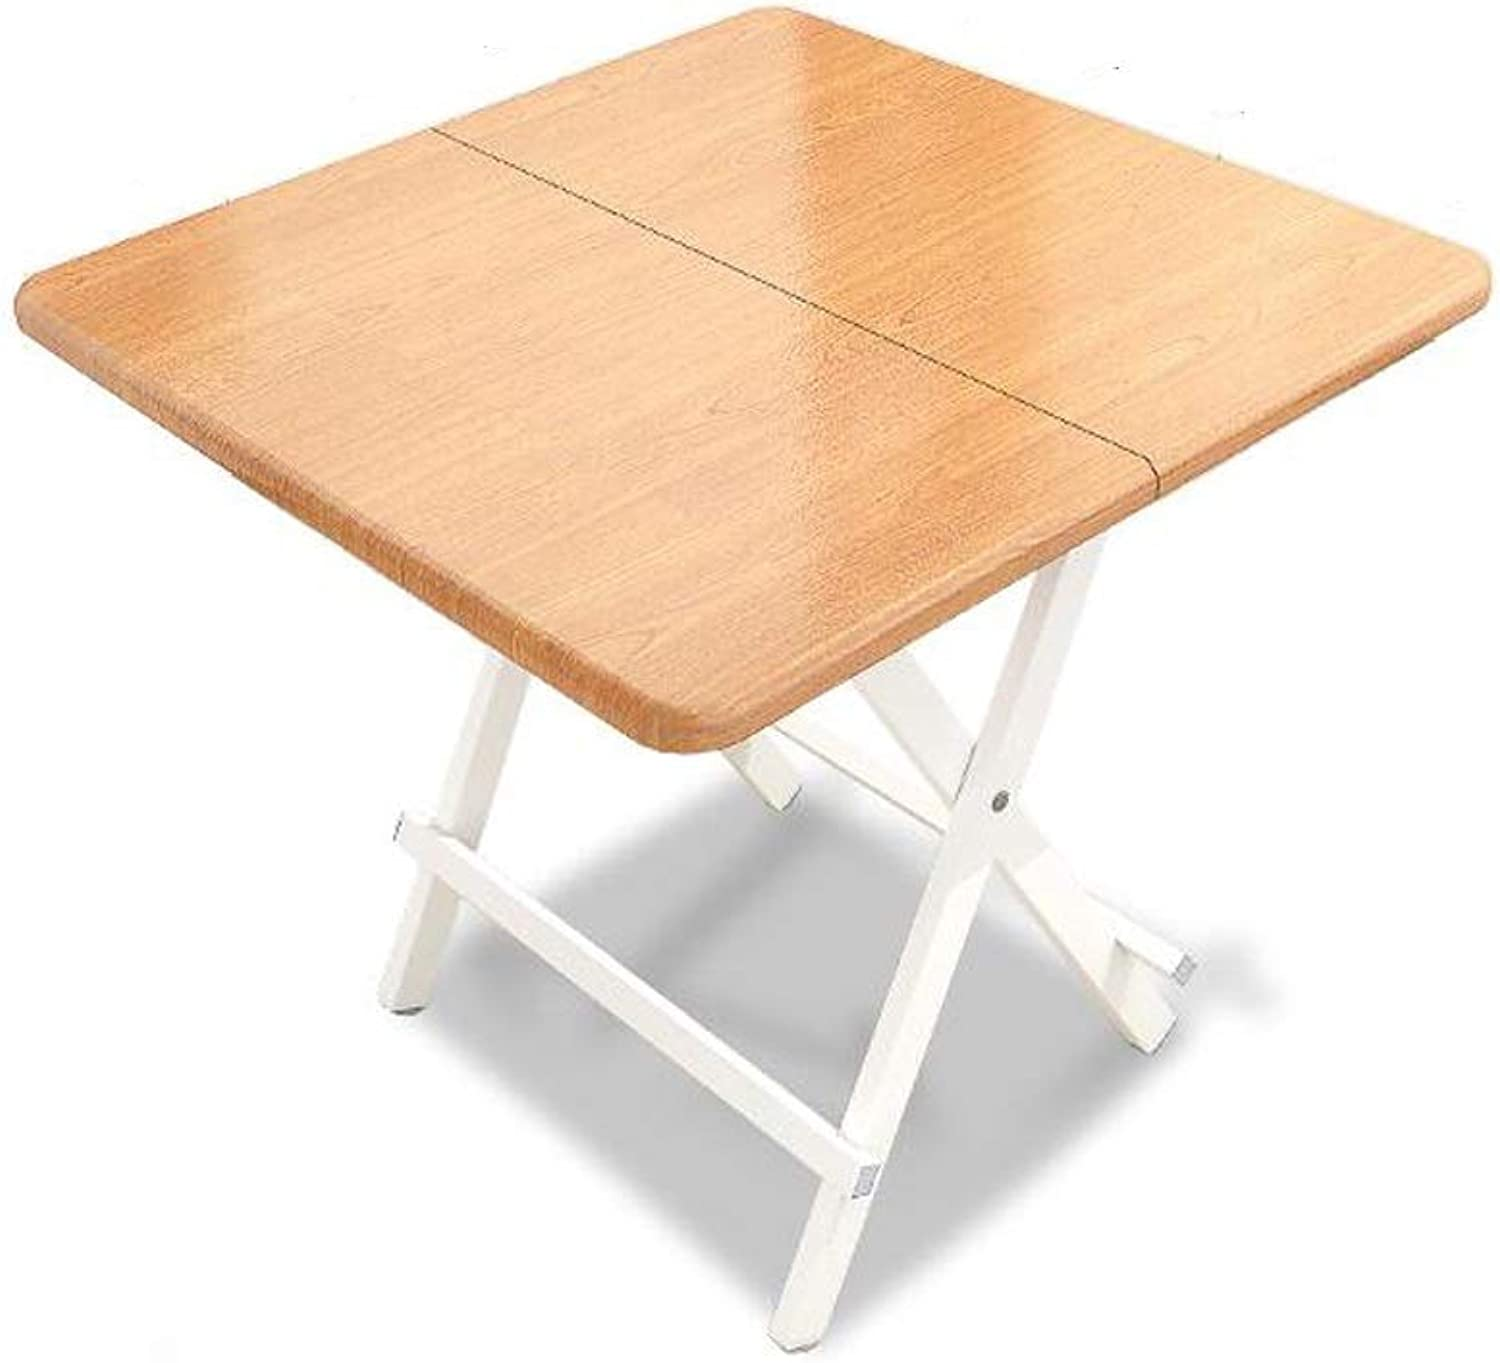 SHWSM Folding Table Small Square Table for Household Use Folding Table Portable Square Table Simple Small Table Folding Table (Size   60×60×55cm)